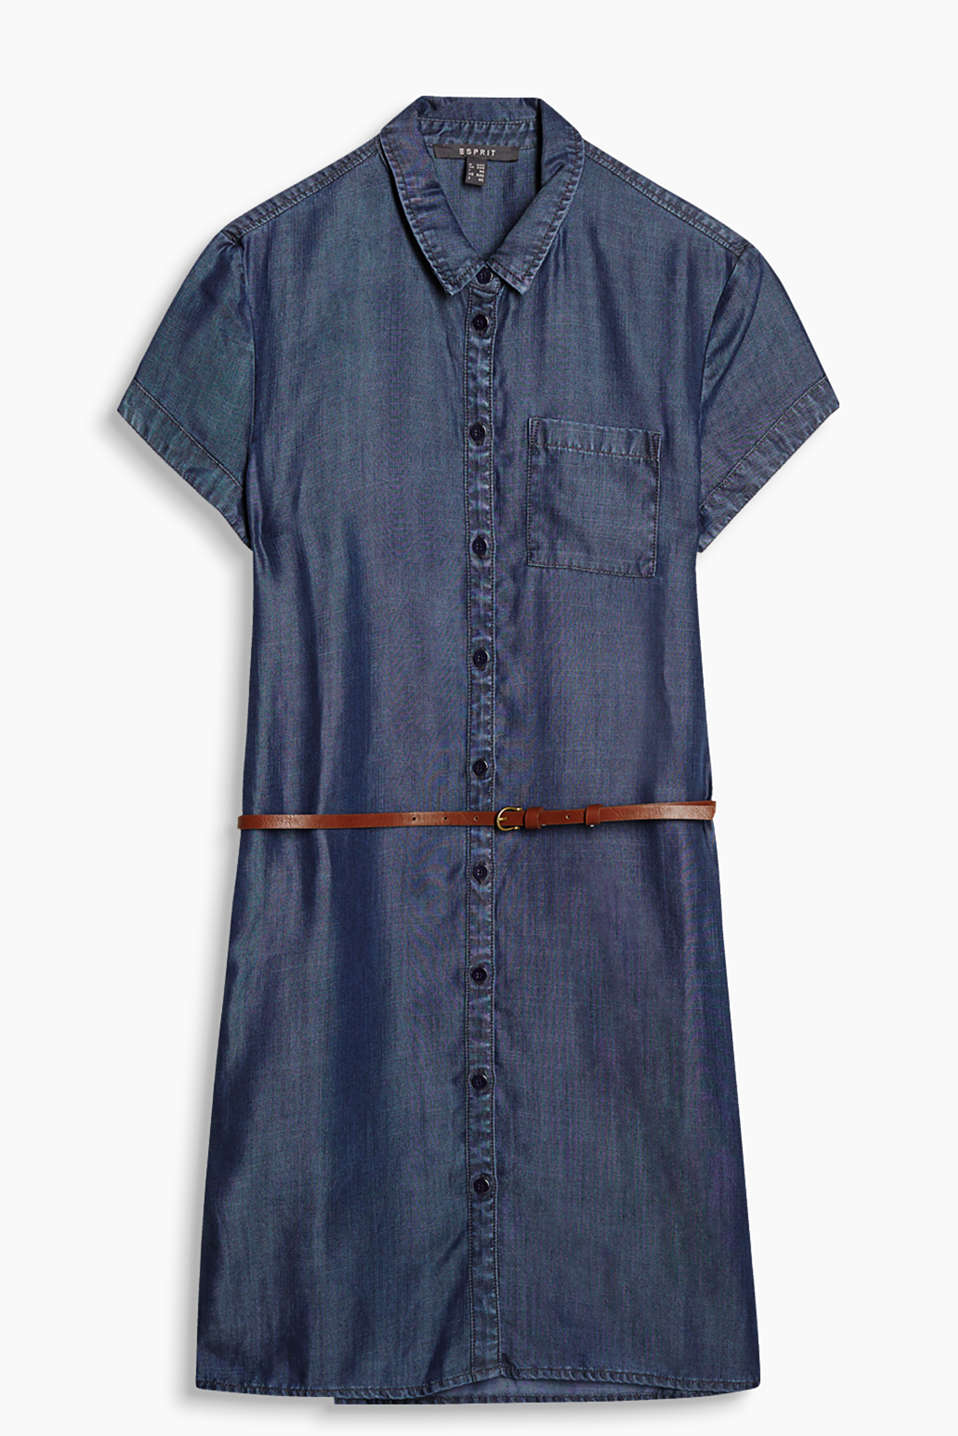 Flowing shirt-blouse dress in a trendy denim look with a thin faux leather belt